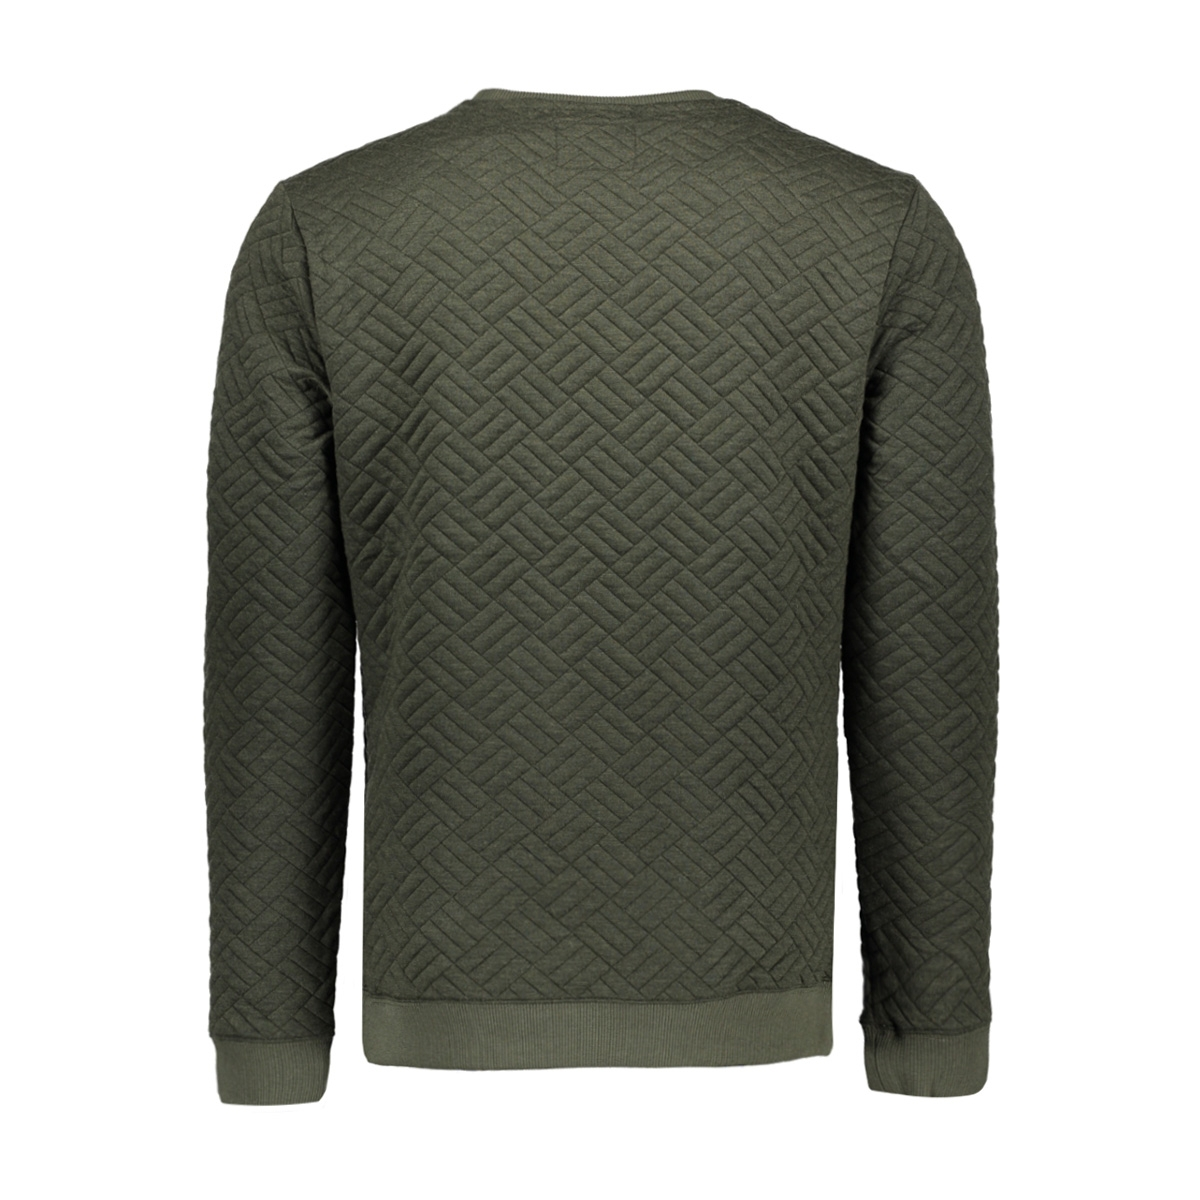 82100708 no-excess sweater 059 army